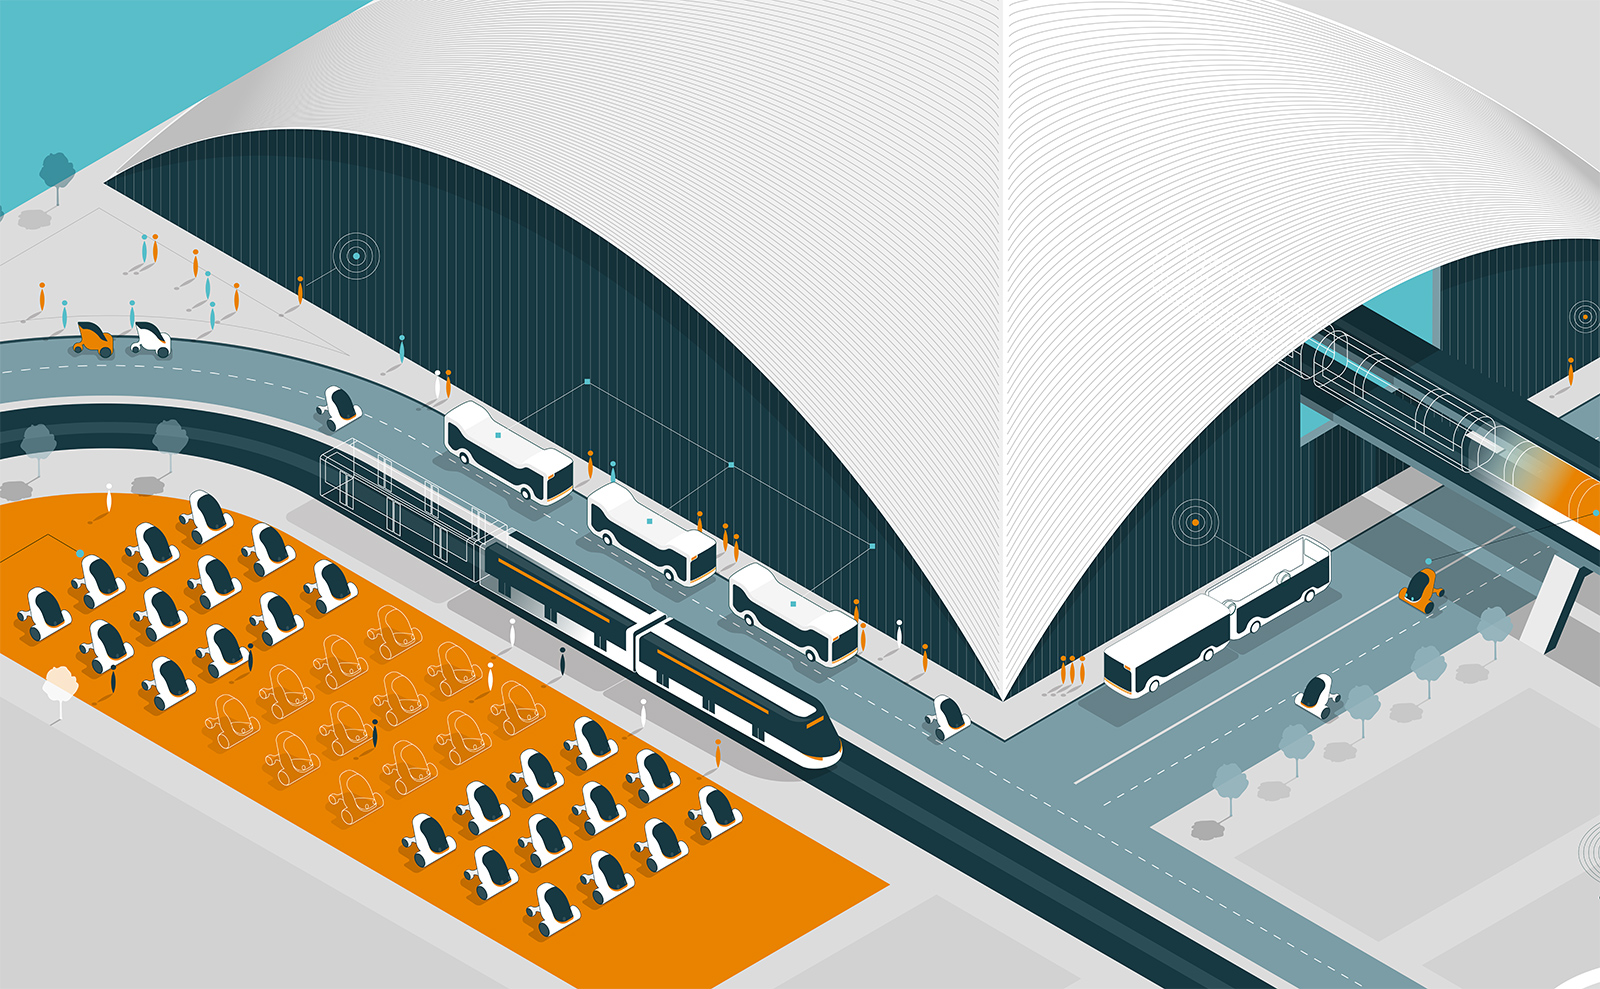 Wired illustration by Thomas Porostocky of The TOM Agency of the future transportation hub